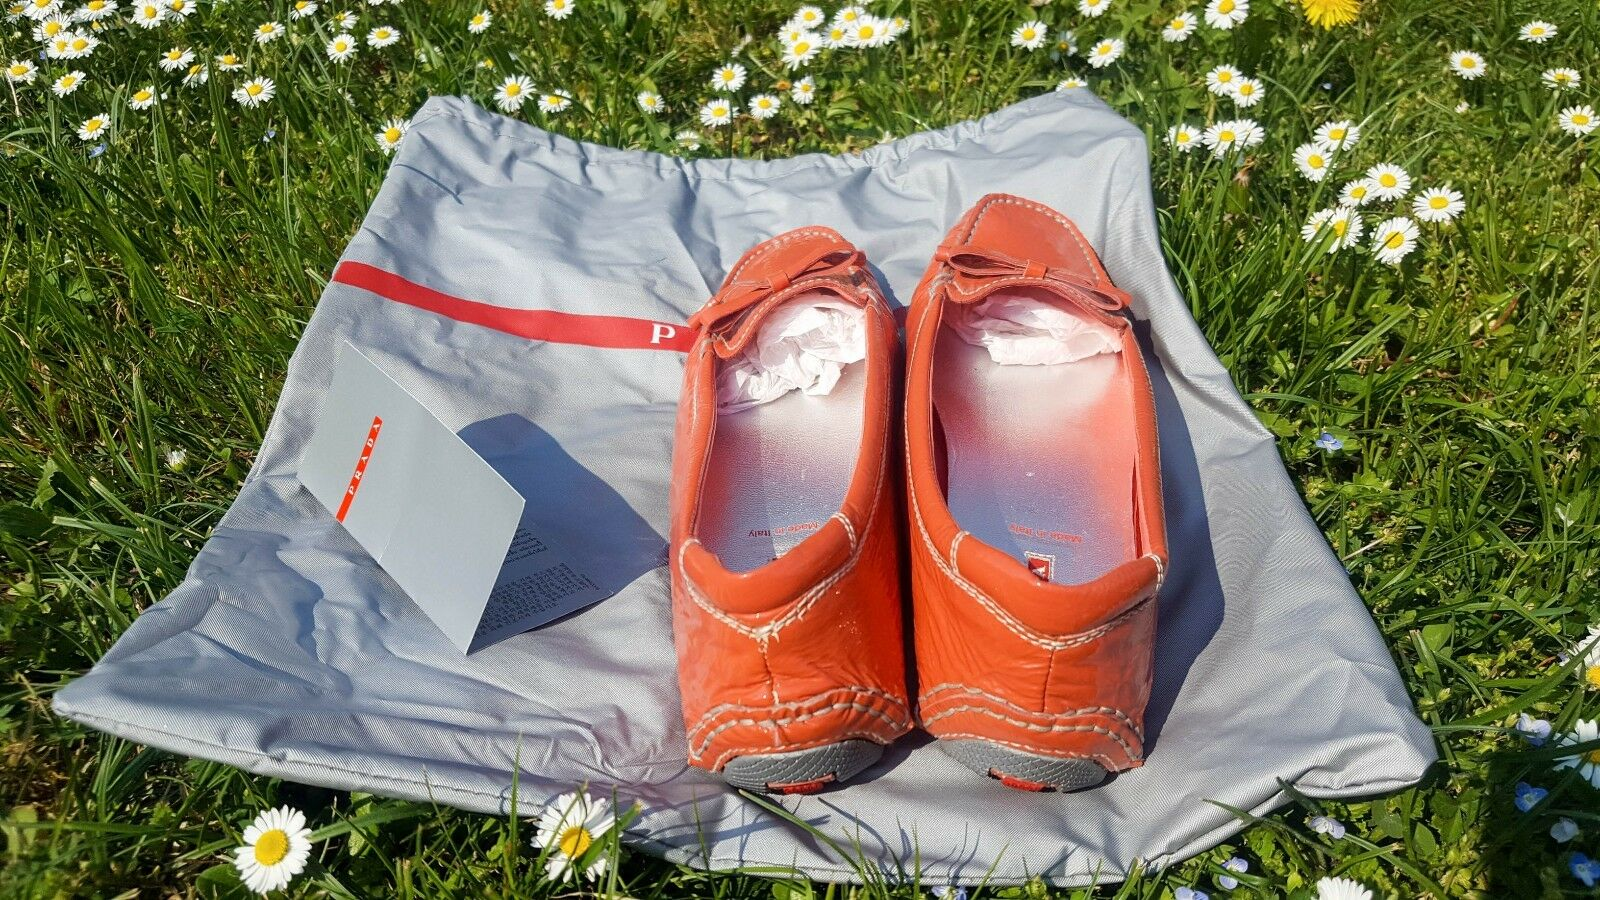 PRADA Coral Patent Leder Ballerina Loafer UK Moccasin Schuhe Sz 36.5 UK Loafer 3.5 Fit Big 8e844e